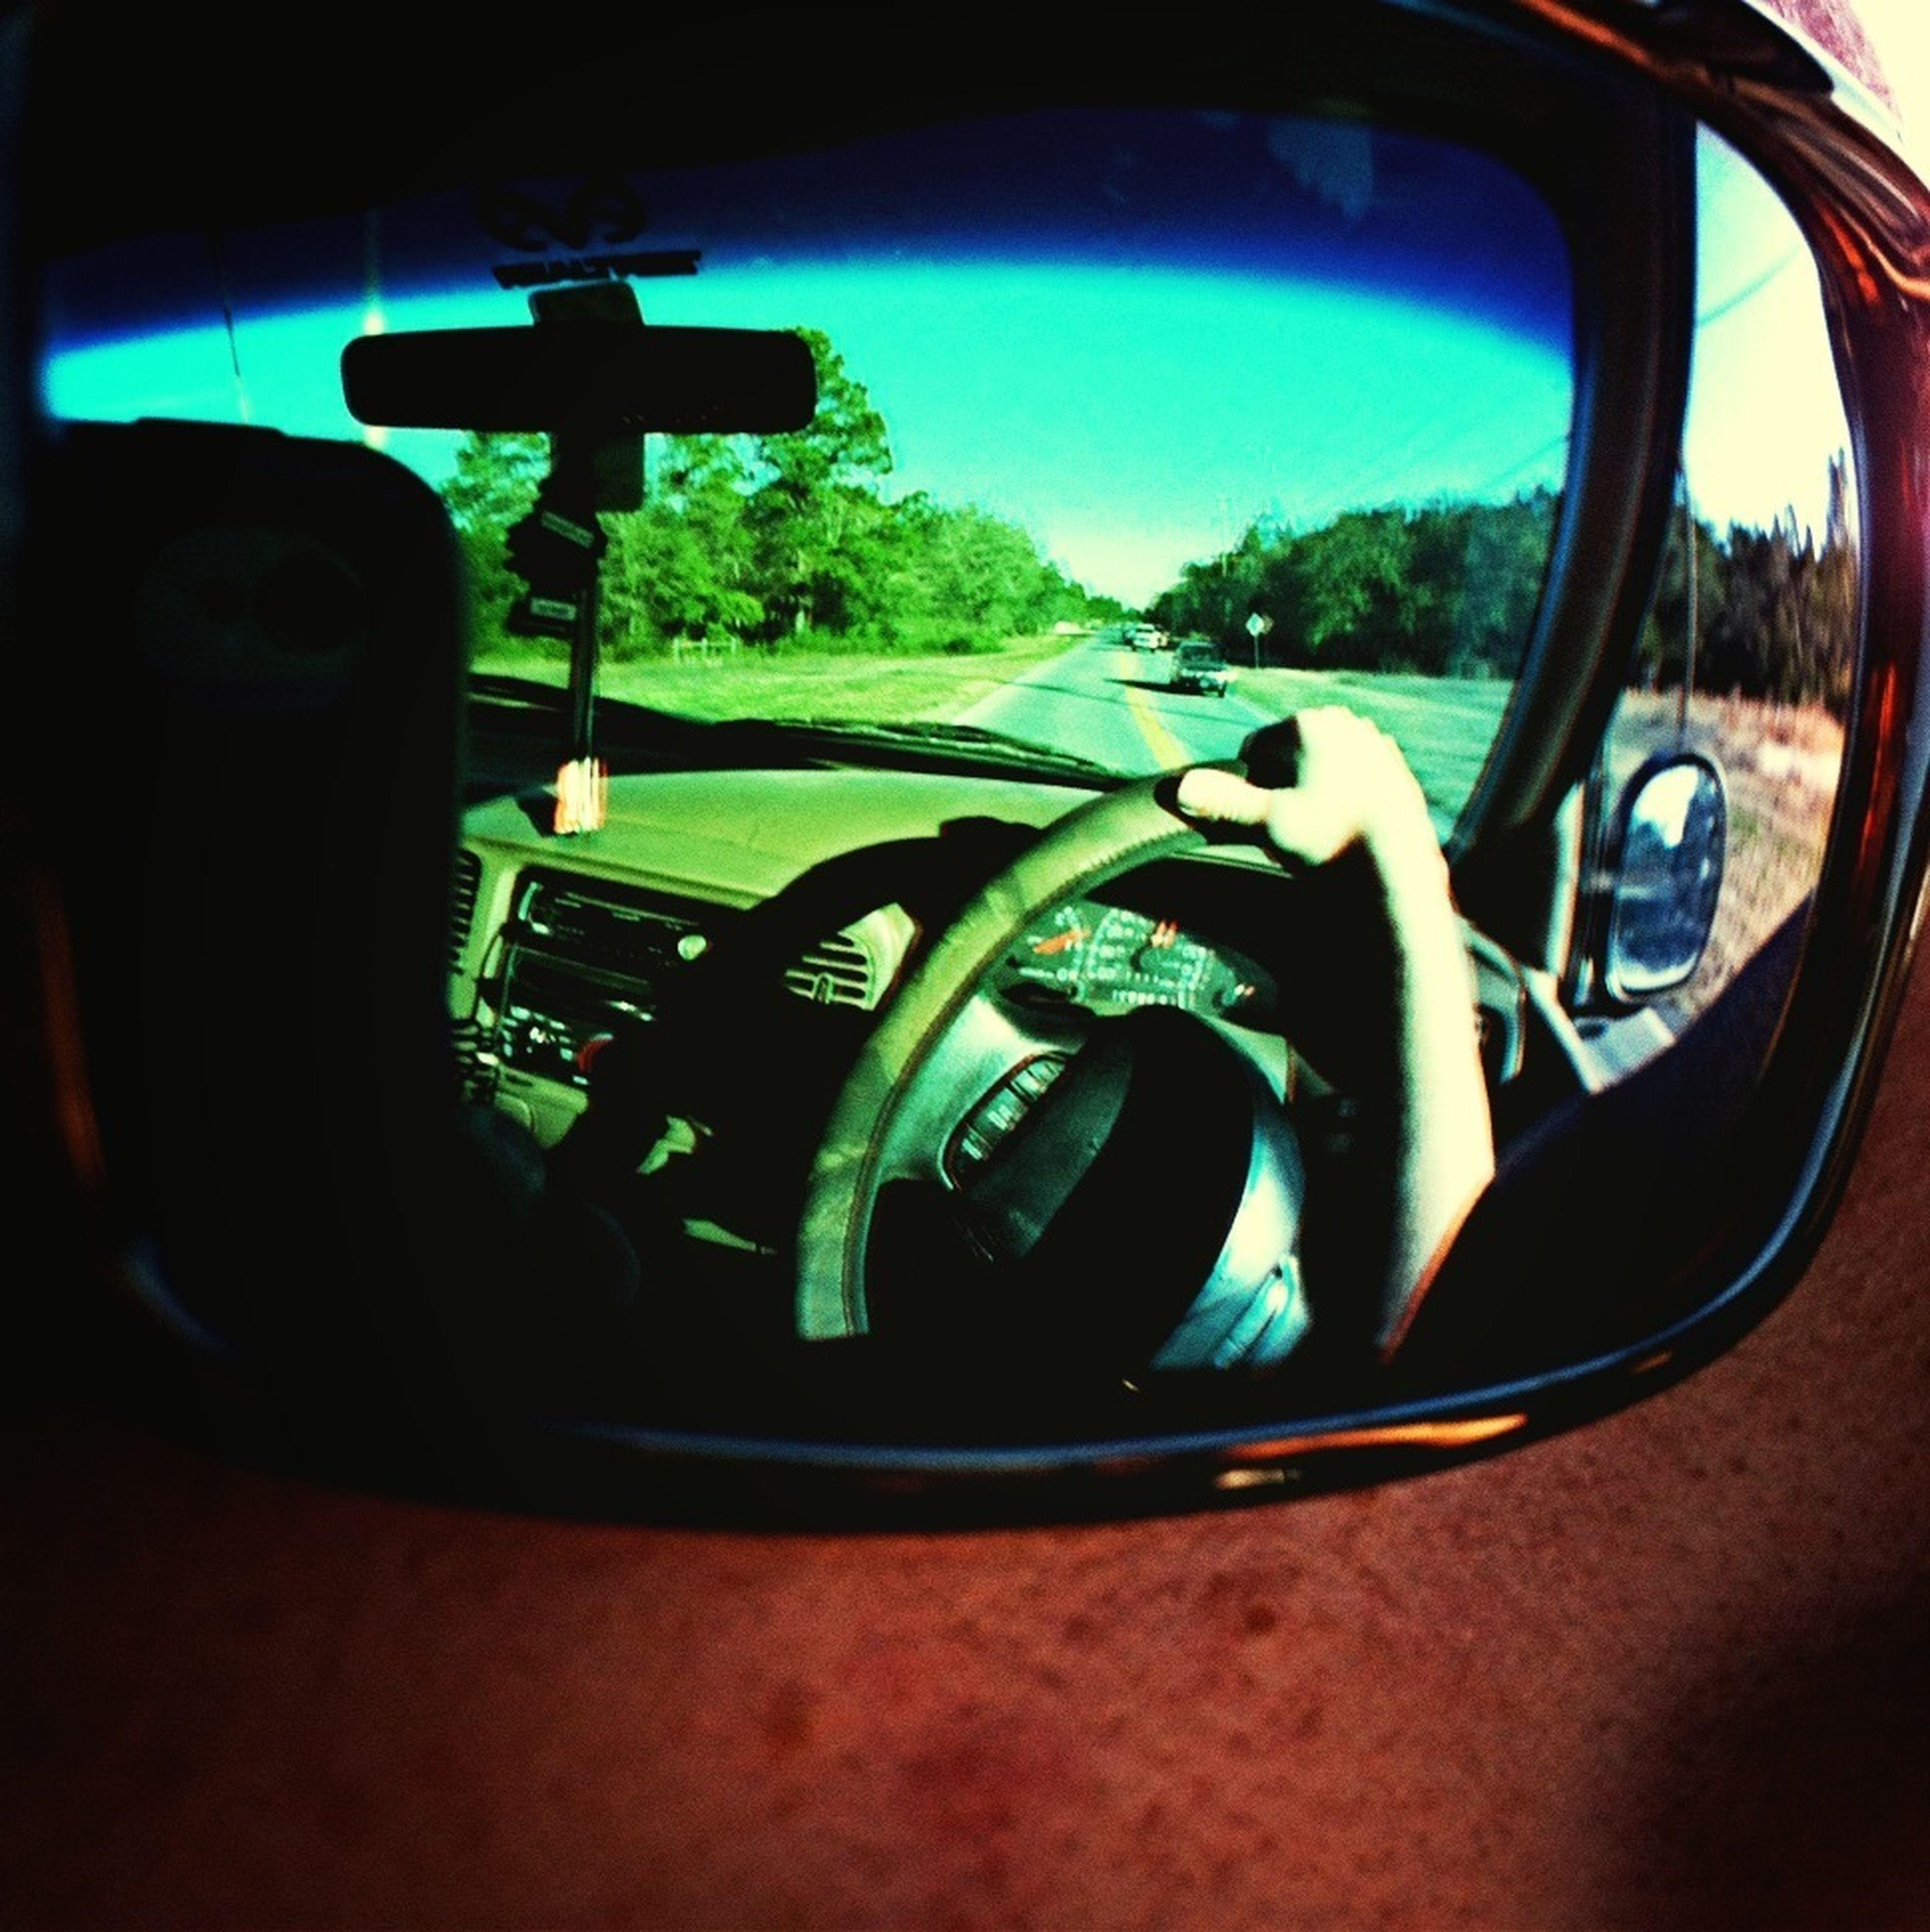 land vehicle, mode of transport, transportation, car, vehicle interior, side-view mirror, reflection, glass - material, car interior, window, transparent, travel, close-up, indoors, windshield, sunlight, photography themes, part of